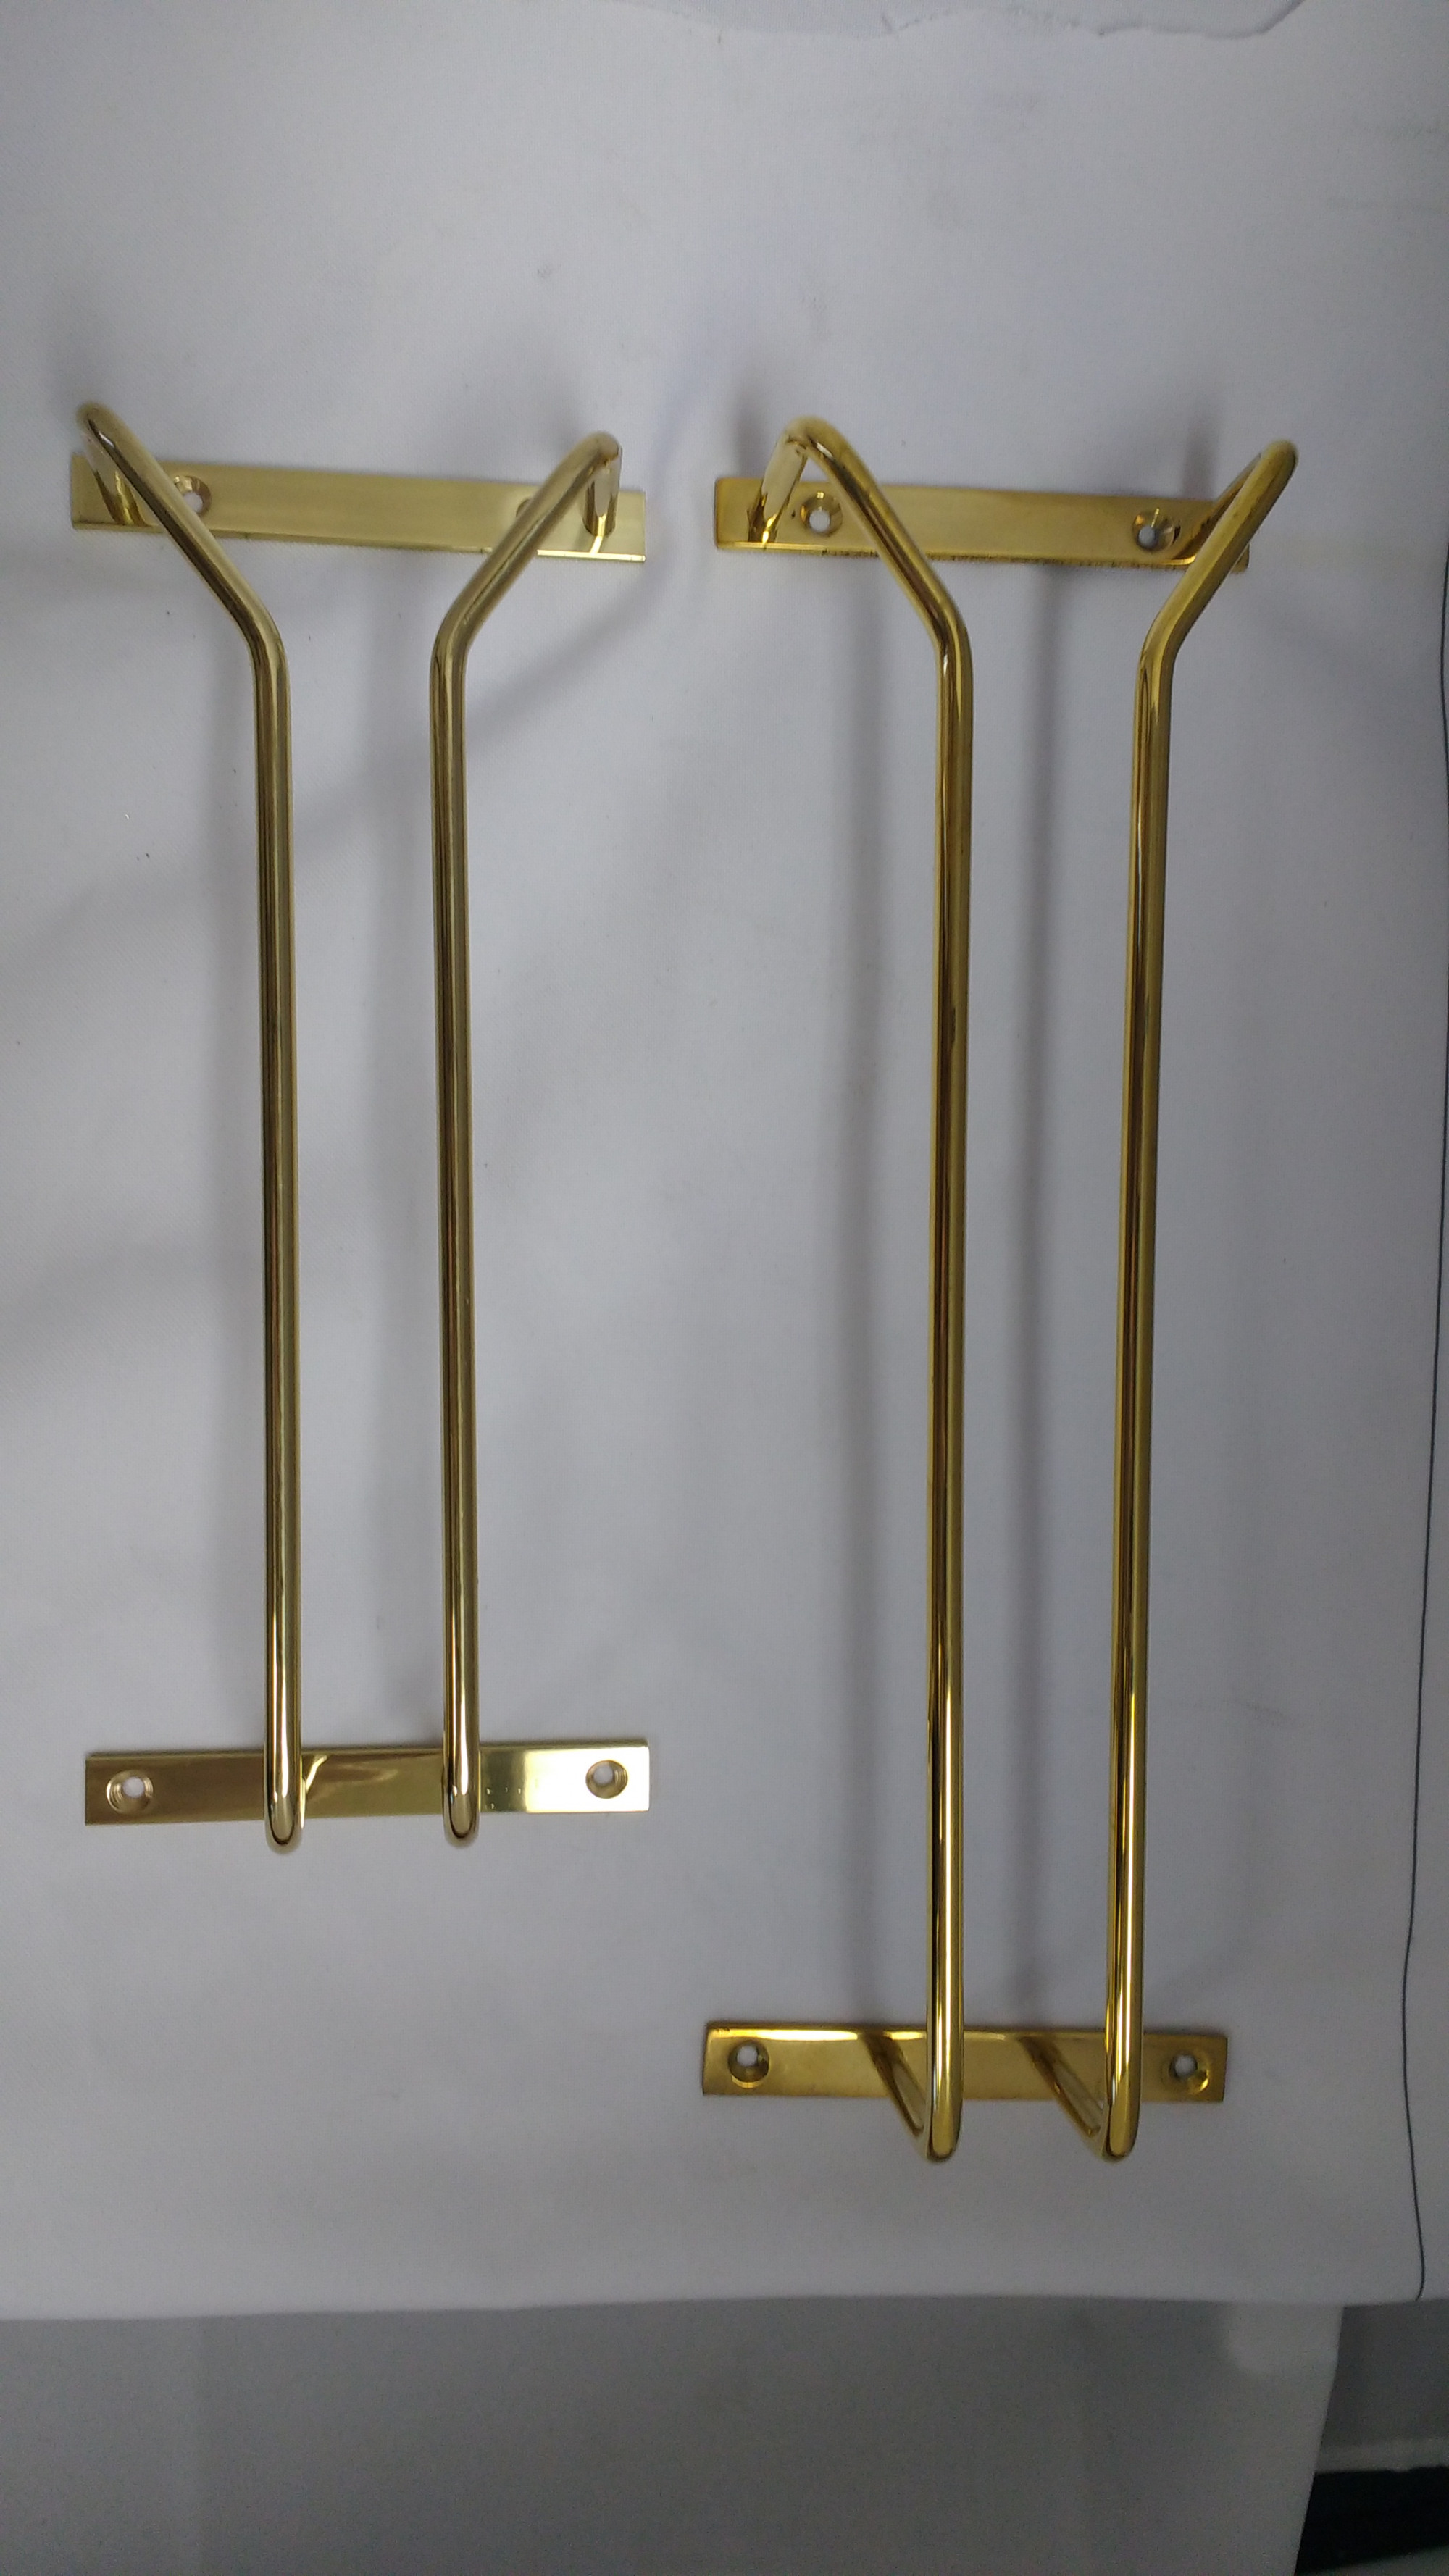 Polished Brass Stemware Support Rods w/ Bracket (18in Long)